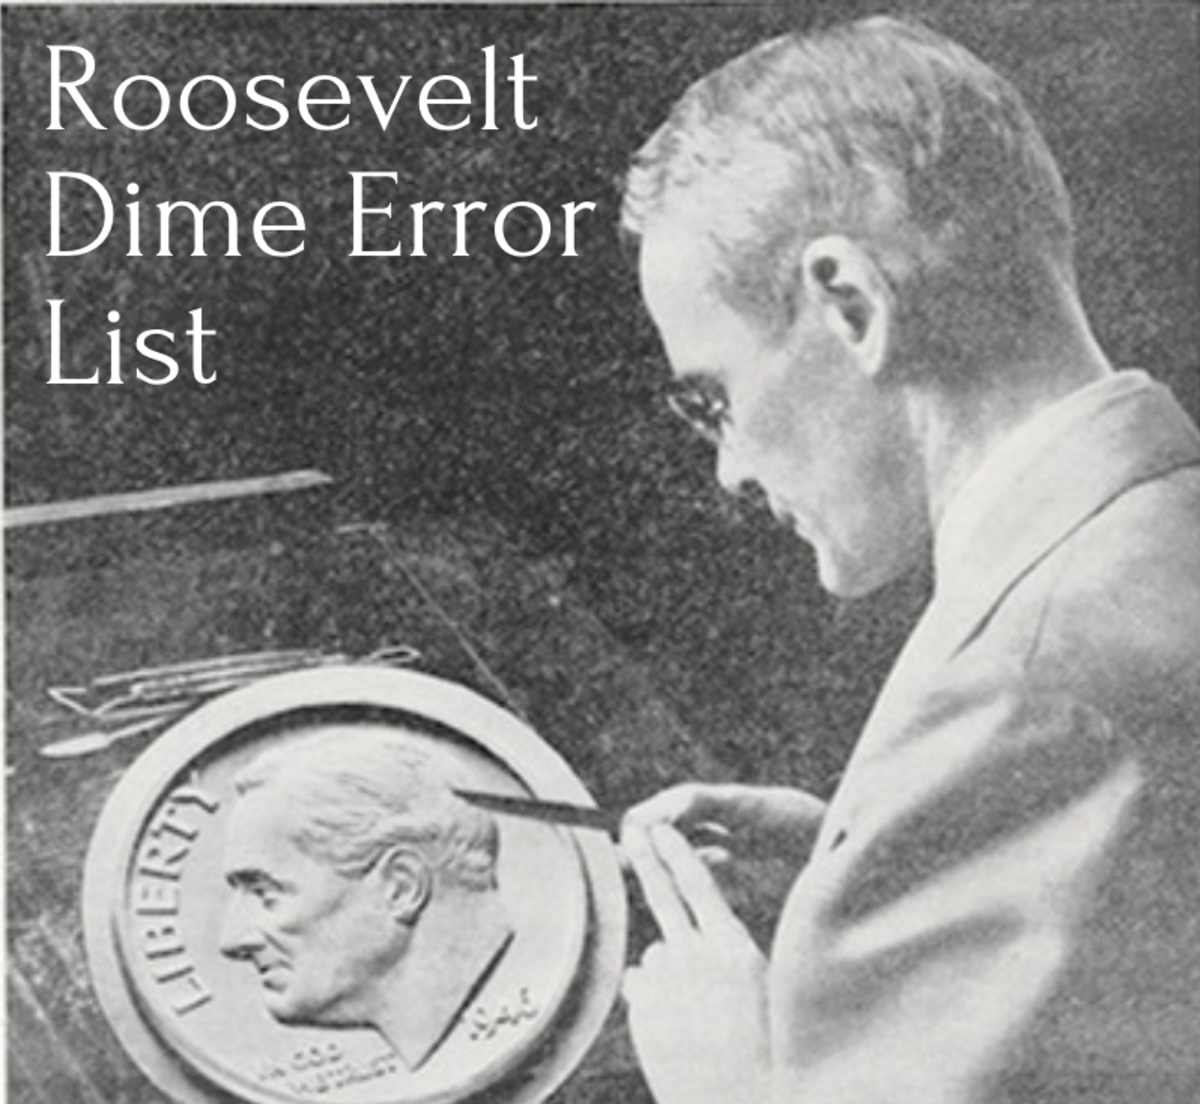 1982 S US Mint Roosevelt Proof 10 Cent Dime Coin